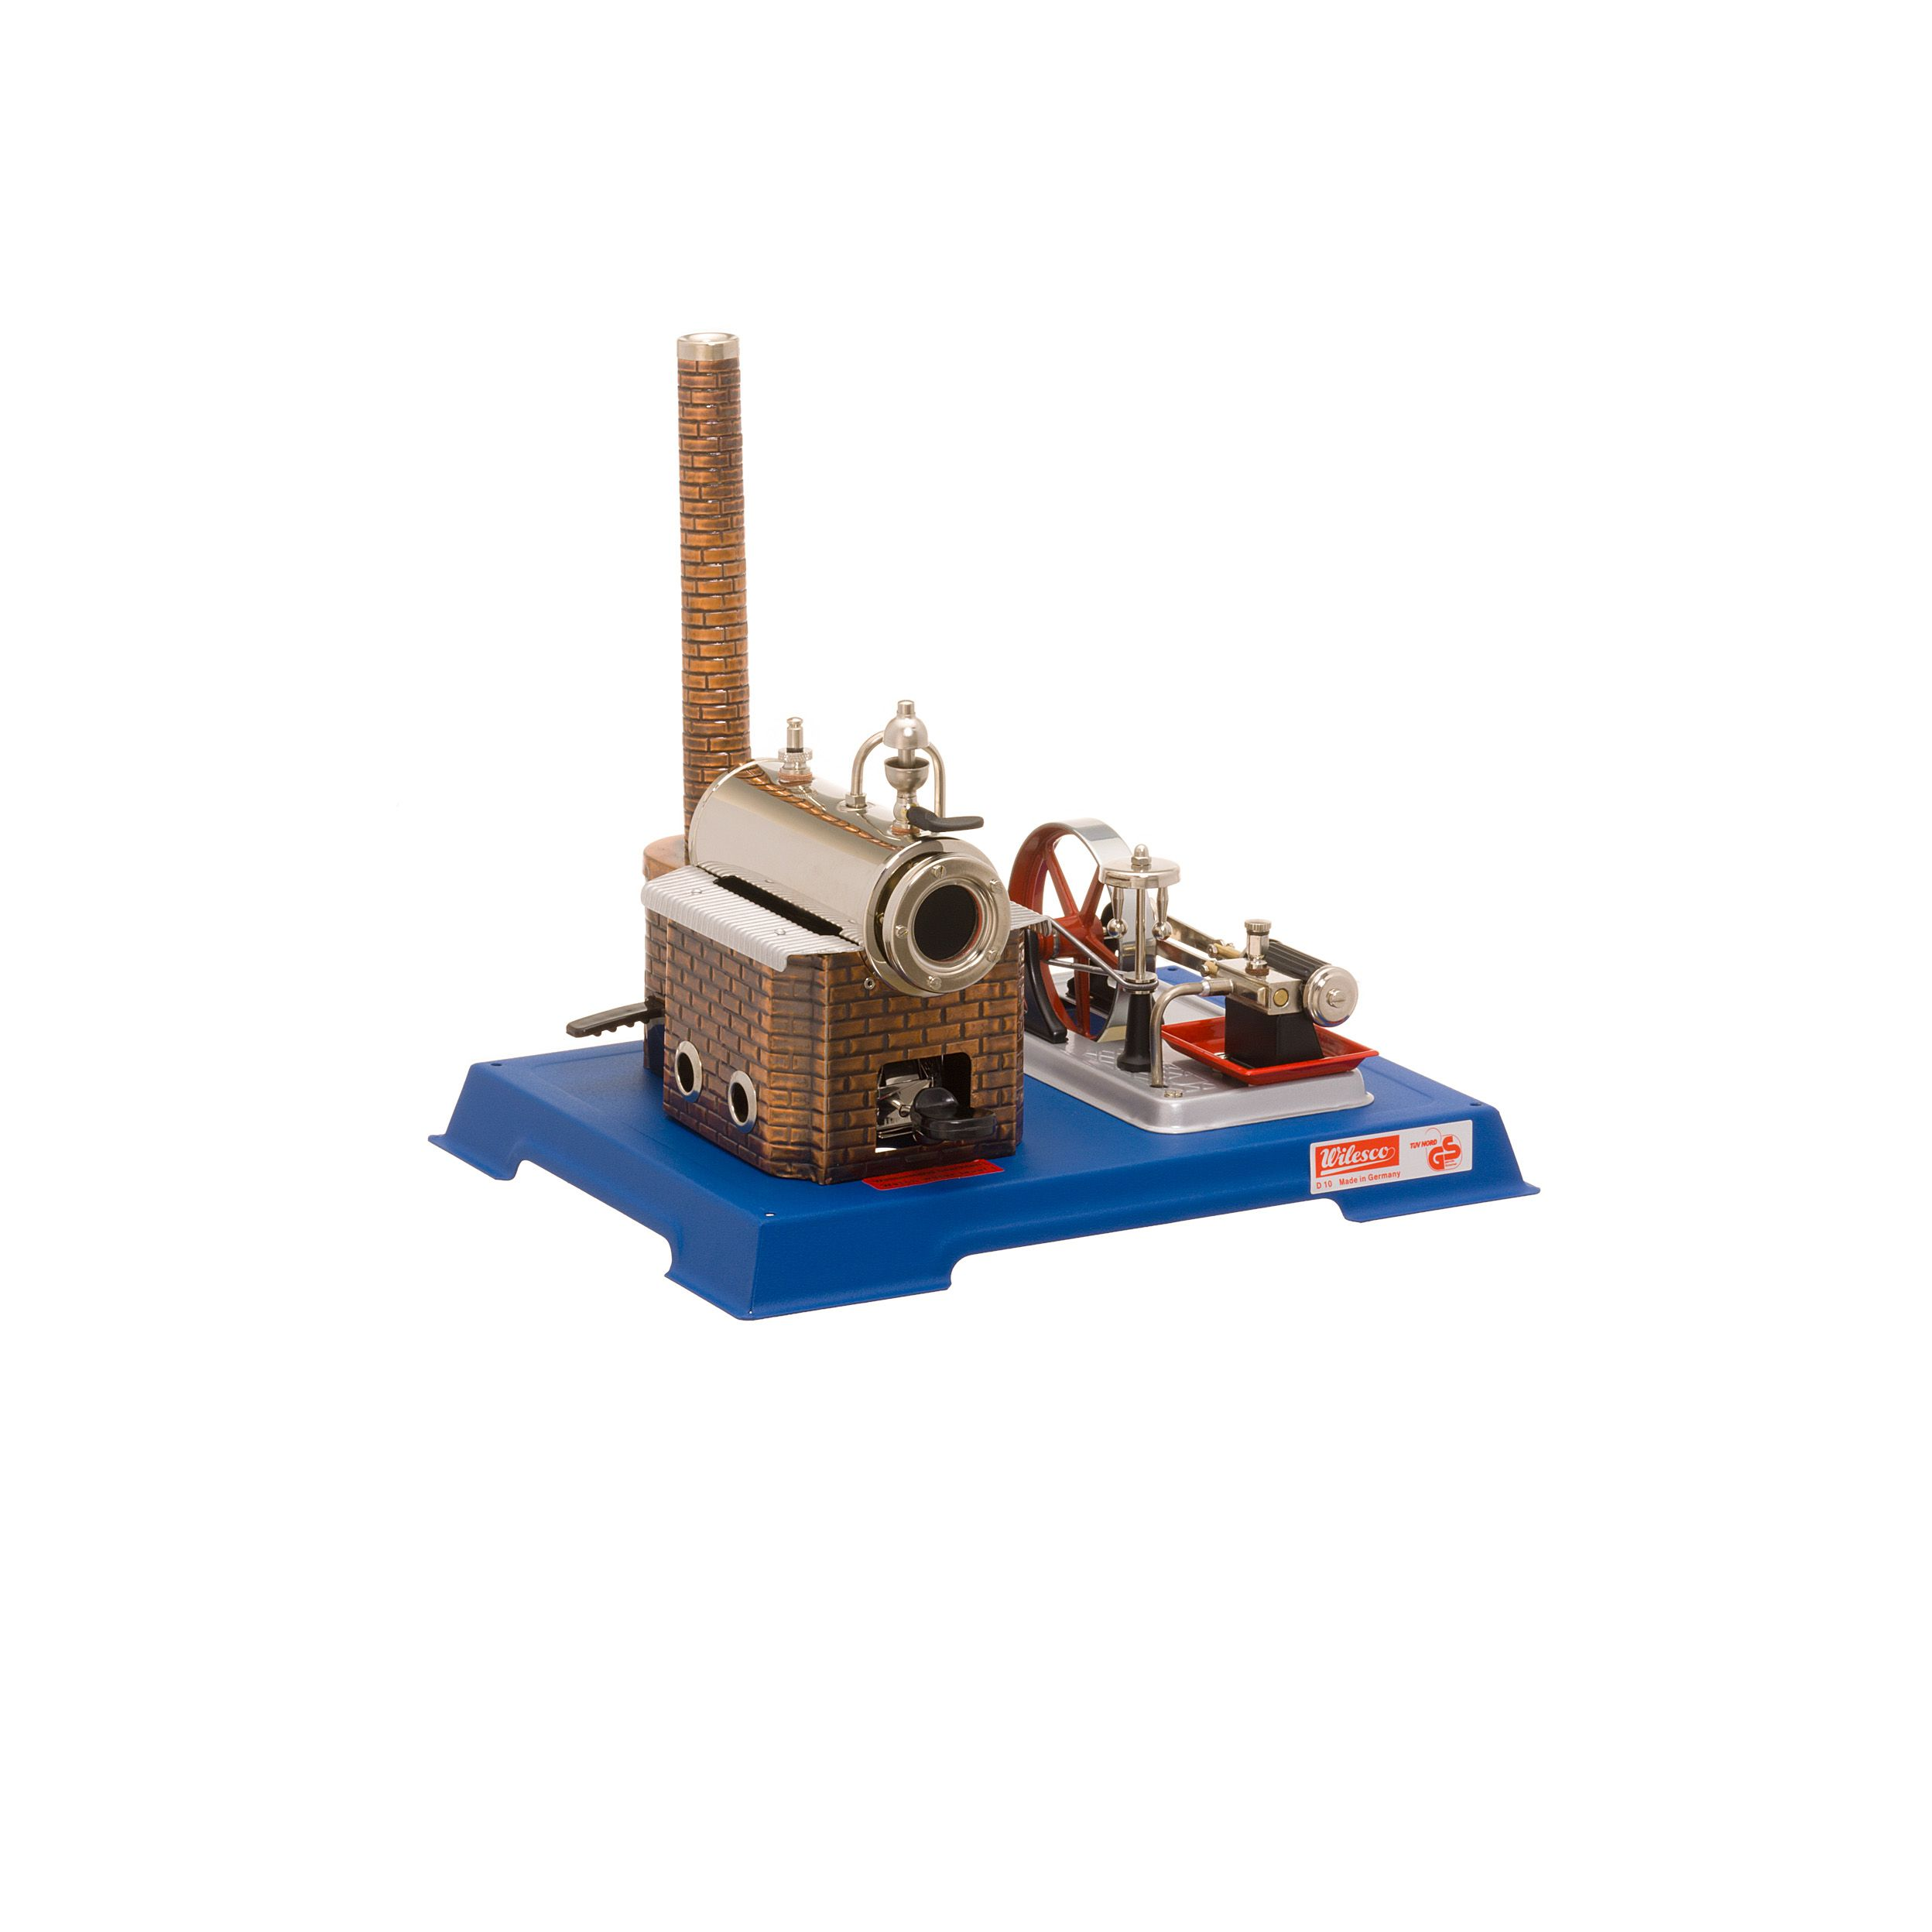 Steam Powered Wilesco D 10 Steam Engine Toys, Hobbies